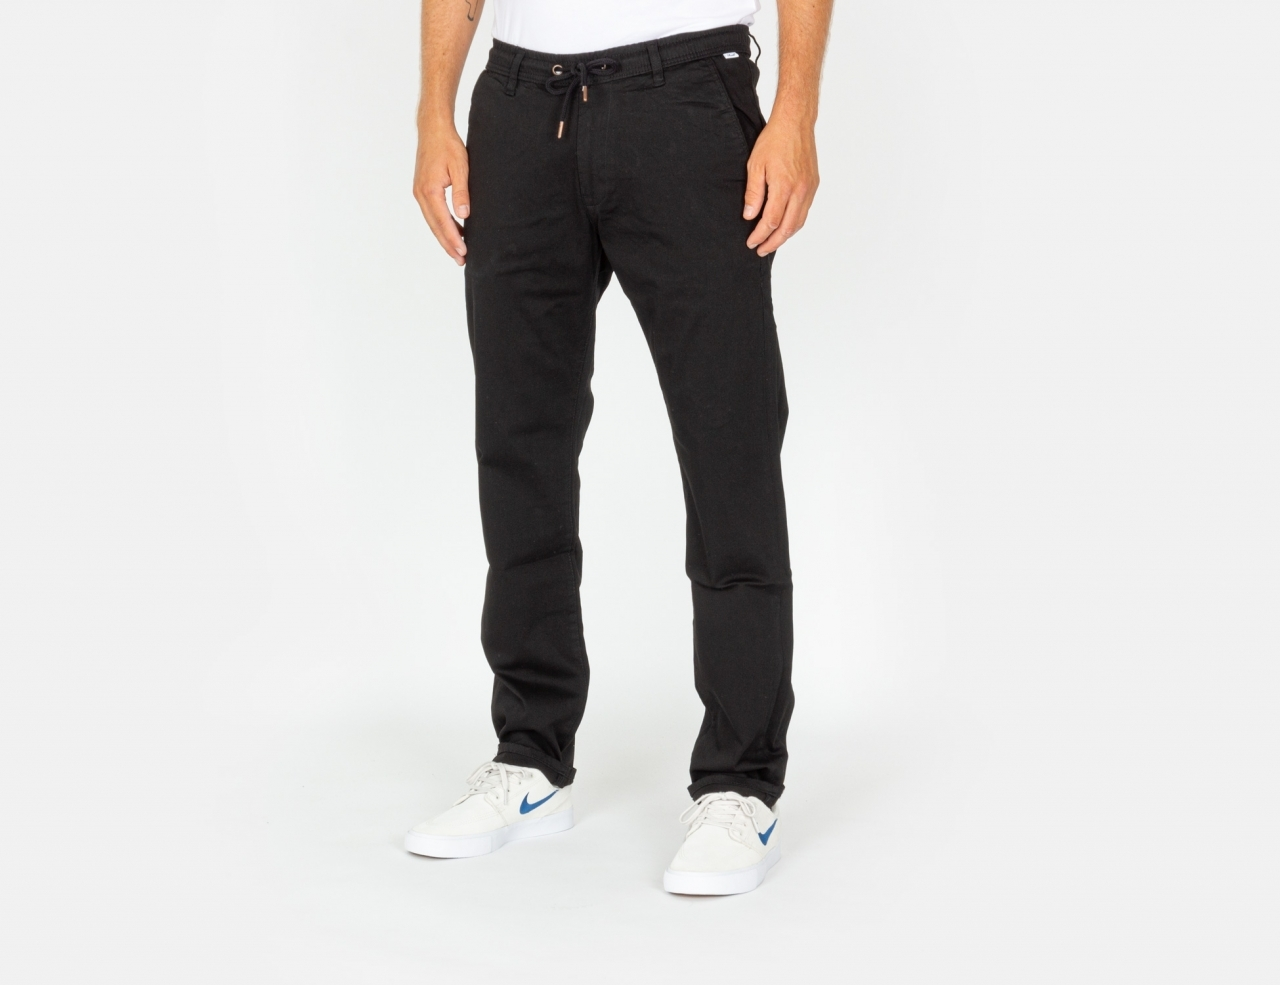 Reell Jeans Reell Jeans Reflex Easy ST Pant